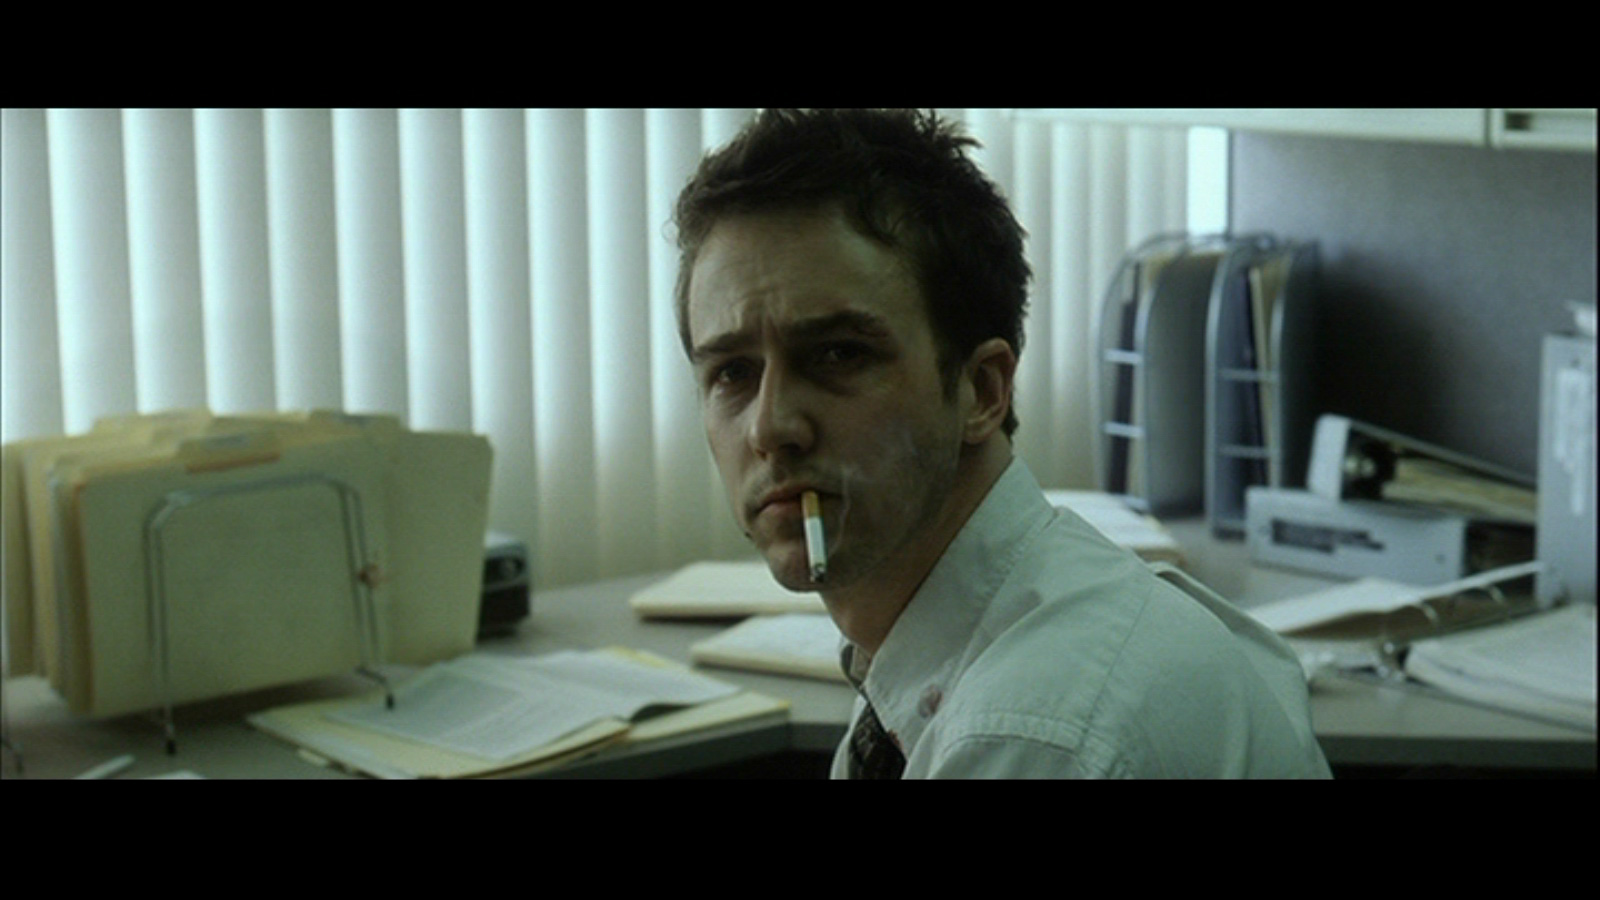 Fight Club Res: 1920x1200 / Size:2146kb. Views: 216895